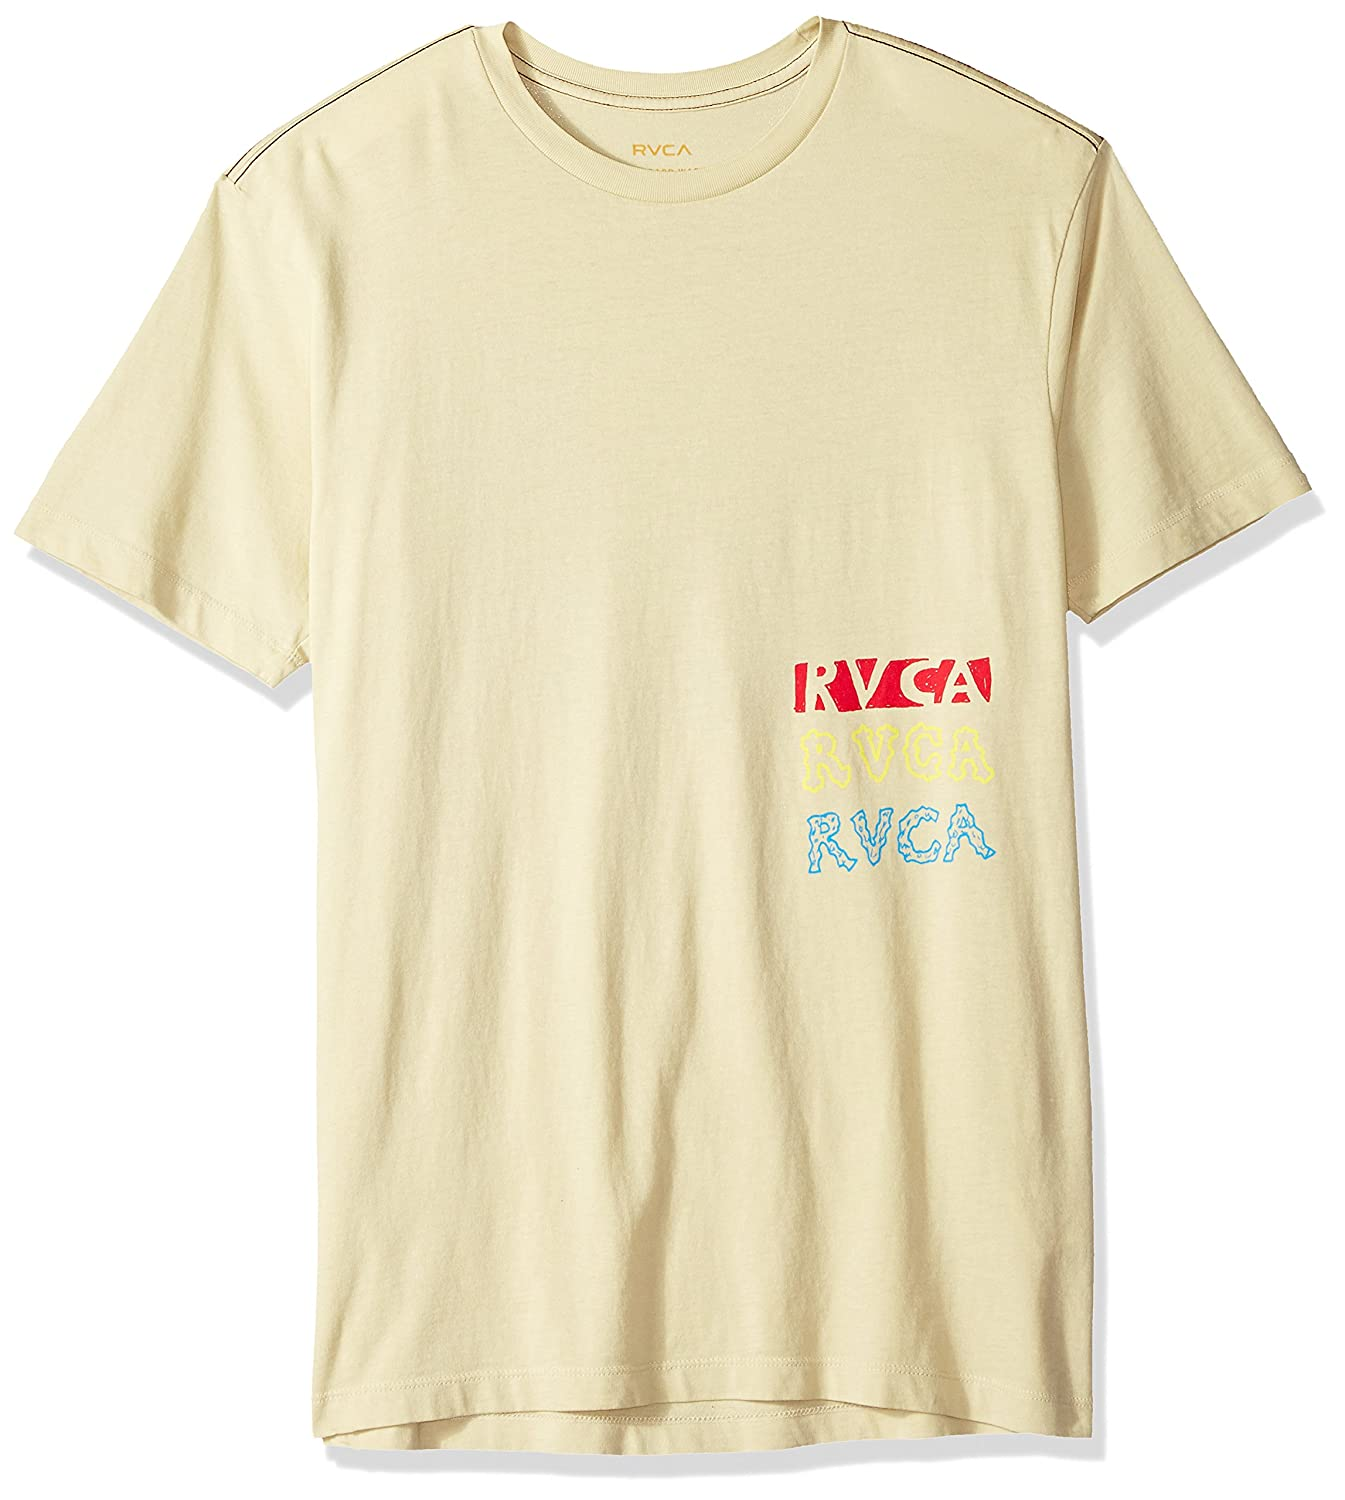 RVCA Mens Grillo Smile Short Sleeve T-Shirt, Dust Yellow, S: Amazon.es: Ropa y accesorios